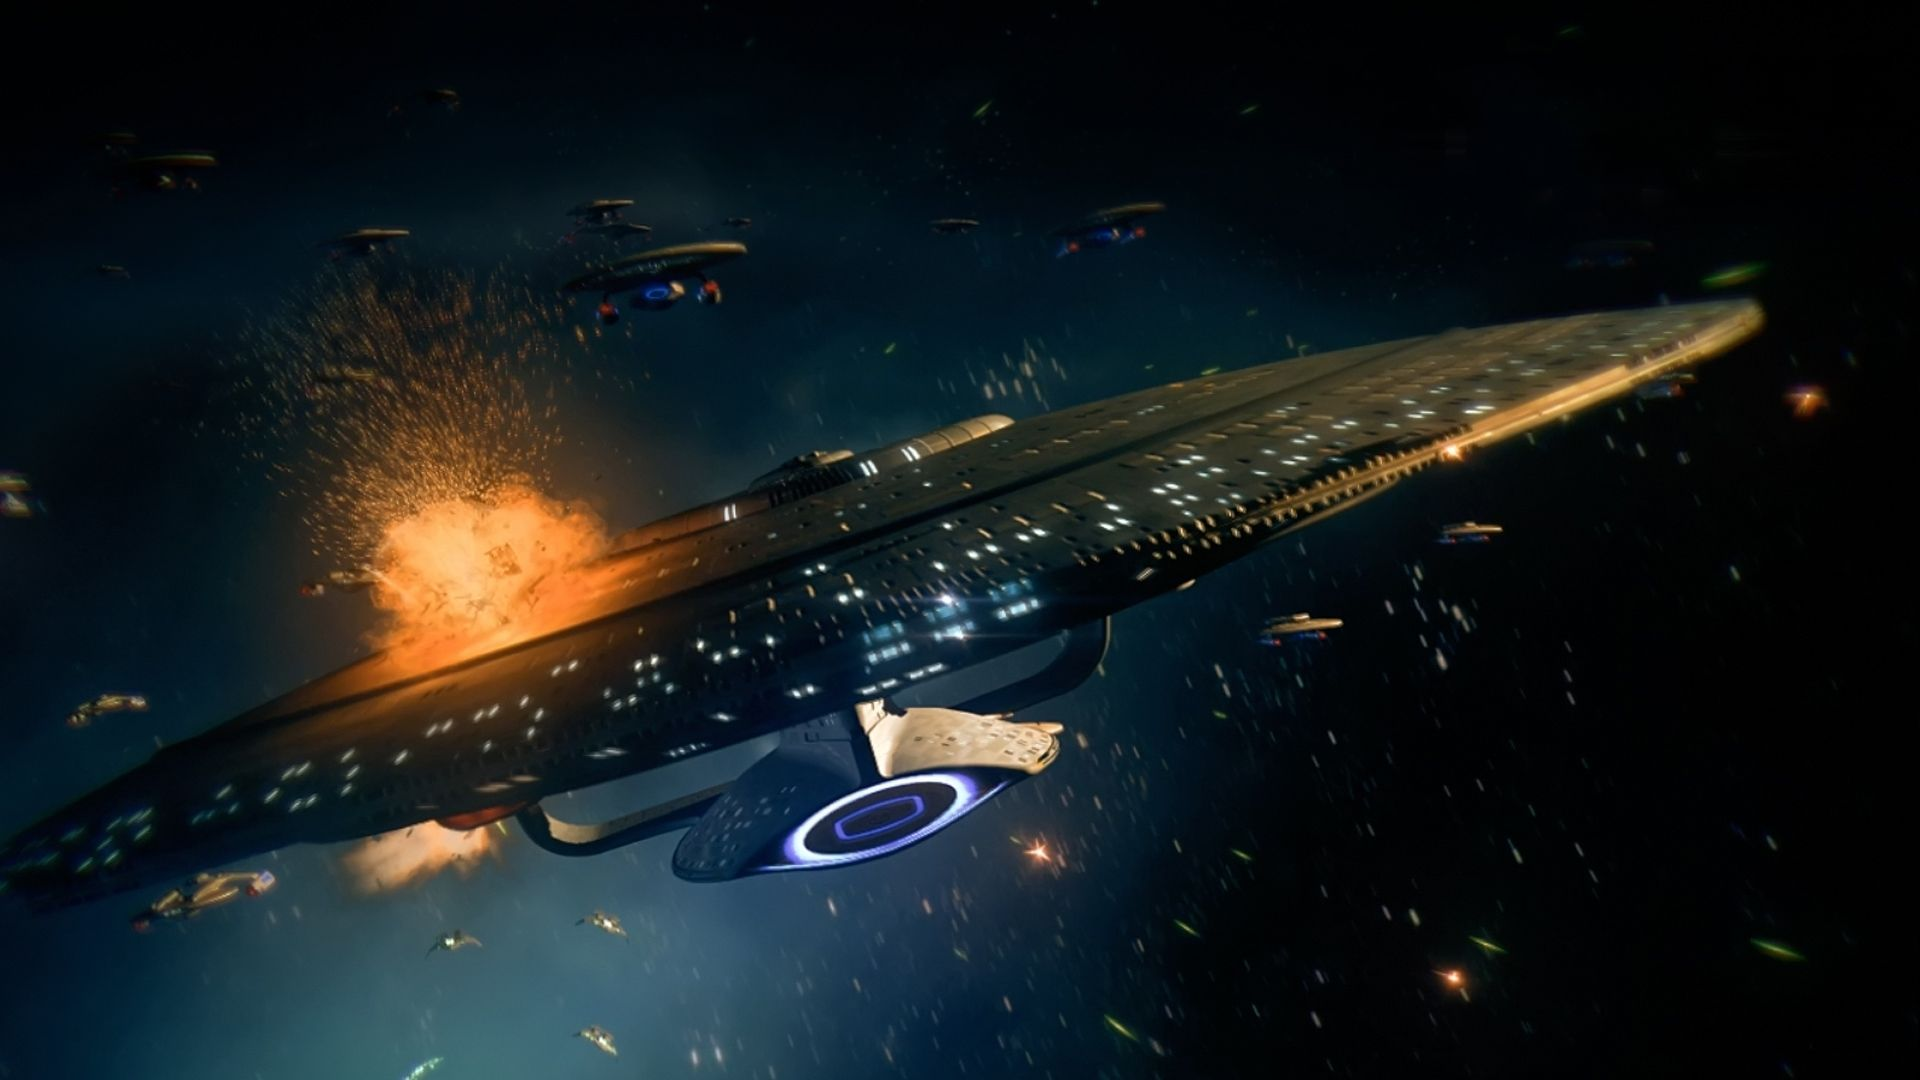 The Galaxy class Enterprise D from the Star Trek Th Next